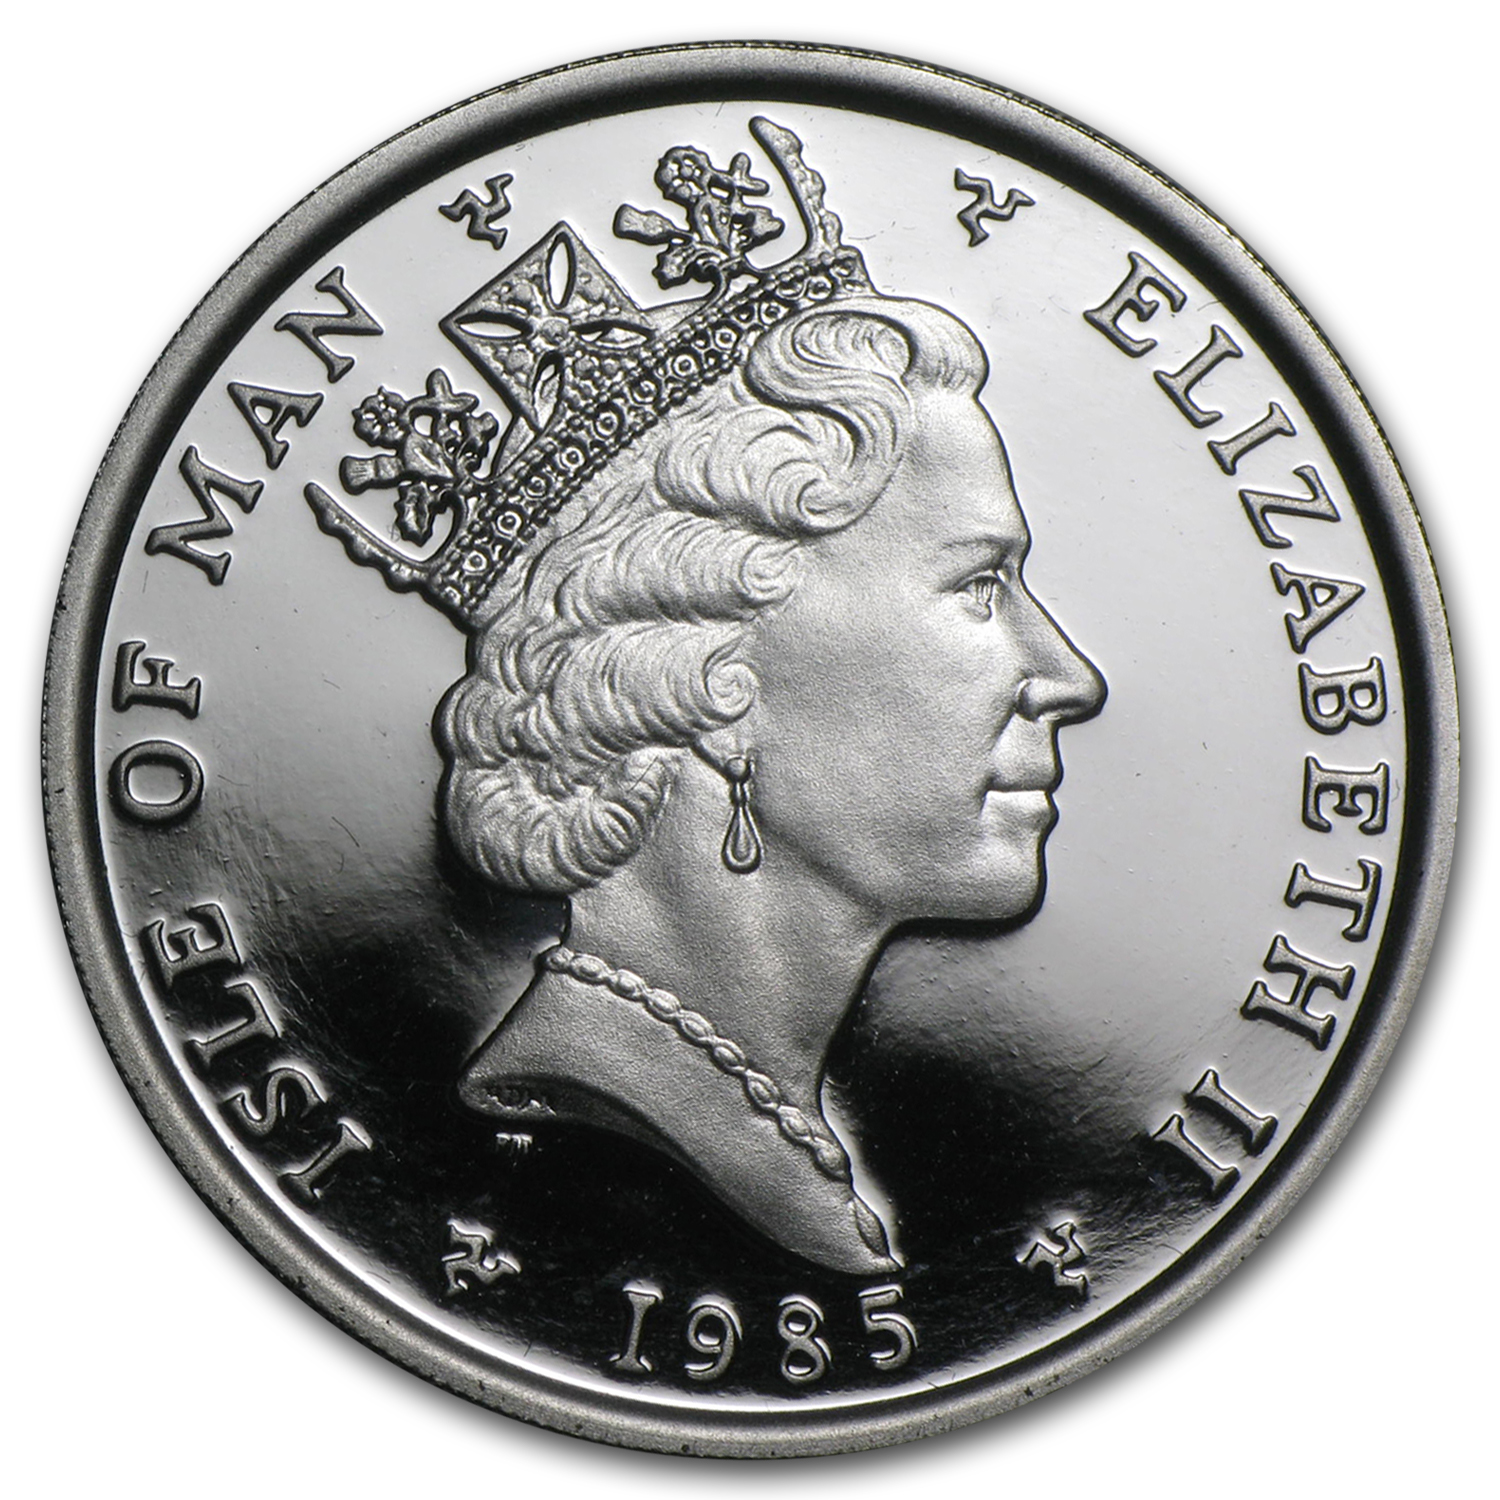 1985 1 oz Isle of Man Platinum Noble BU